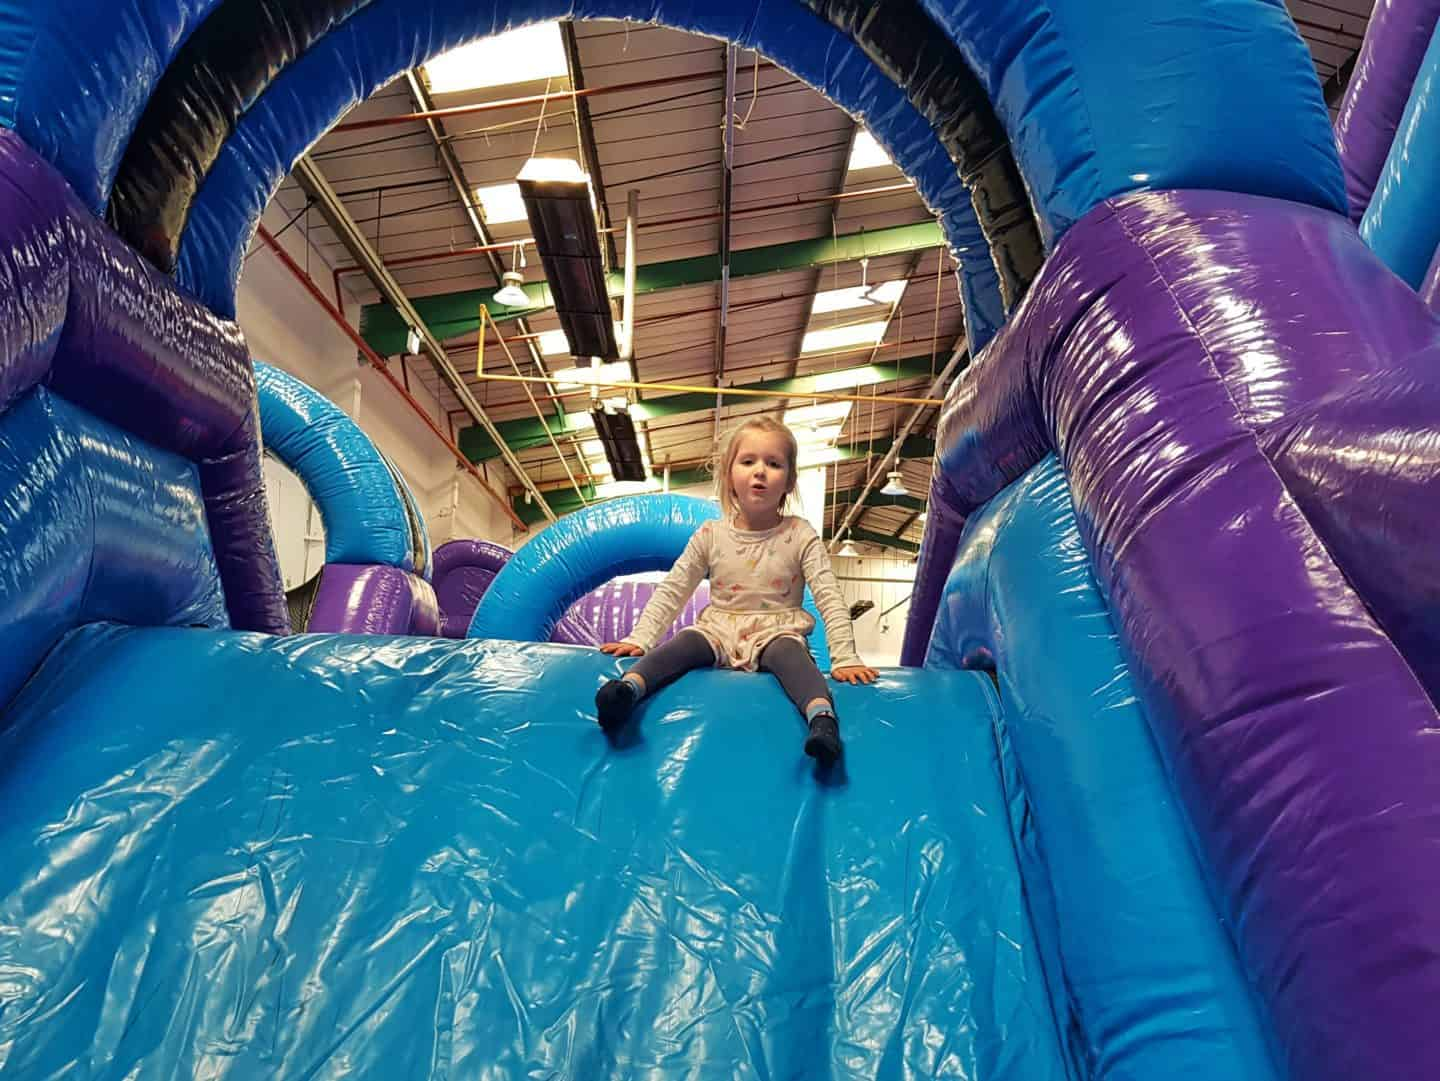 Inflata Nation Birmingham girl on obstacle course slide